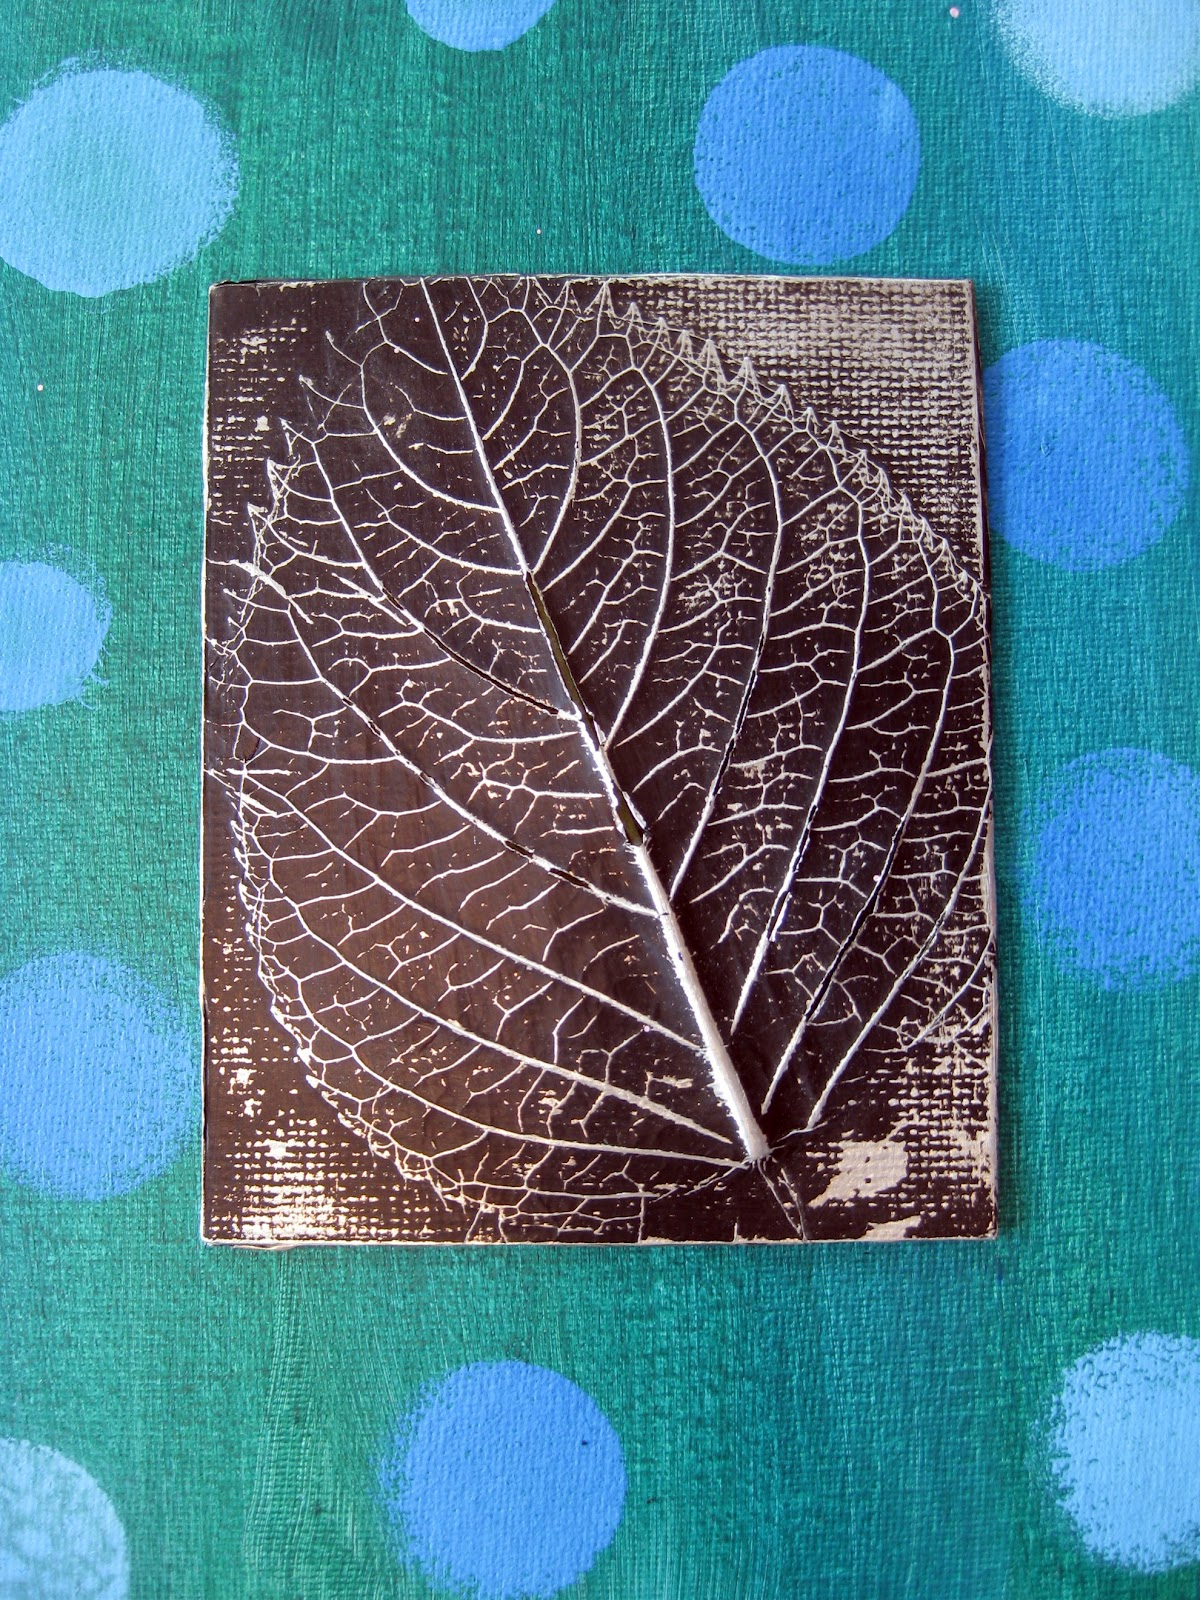 Cassie Stephens: In the Art Room: Leaf Relief